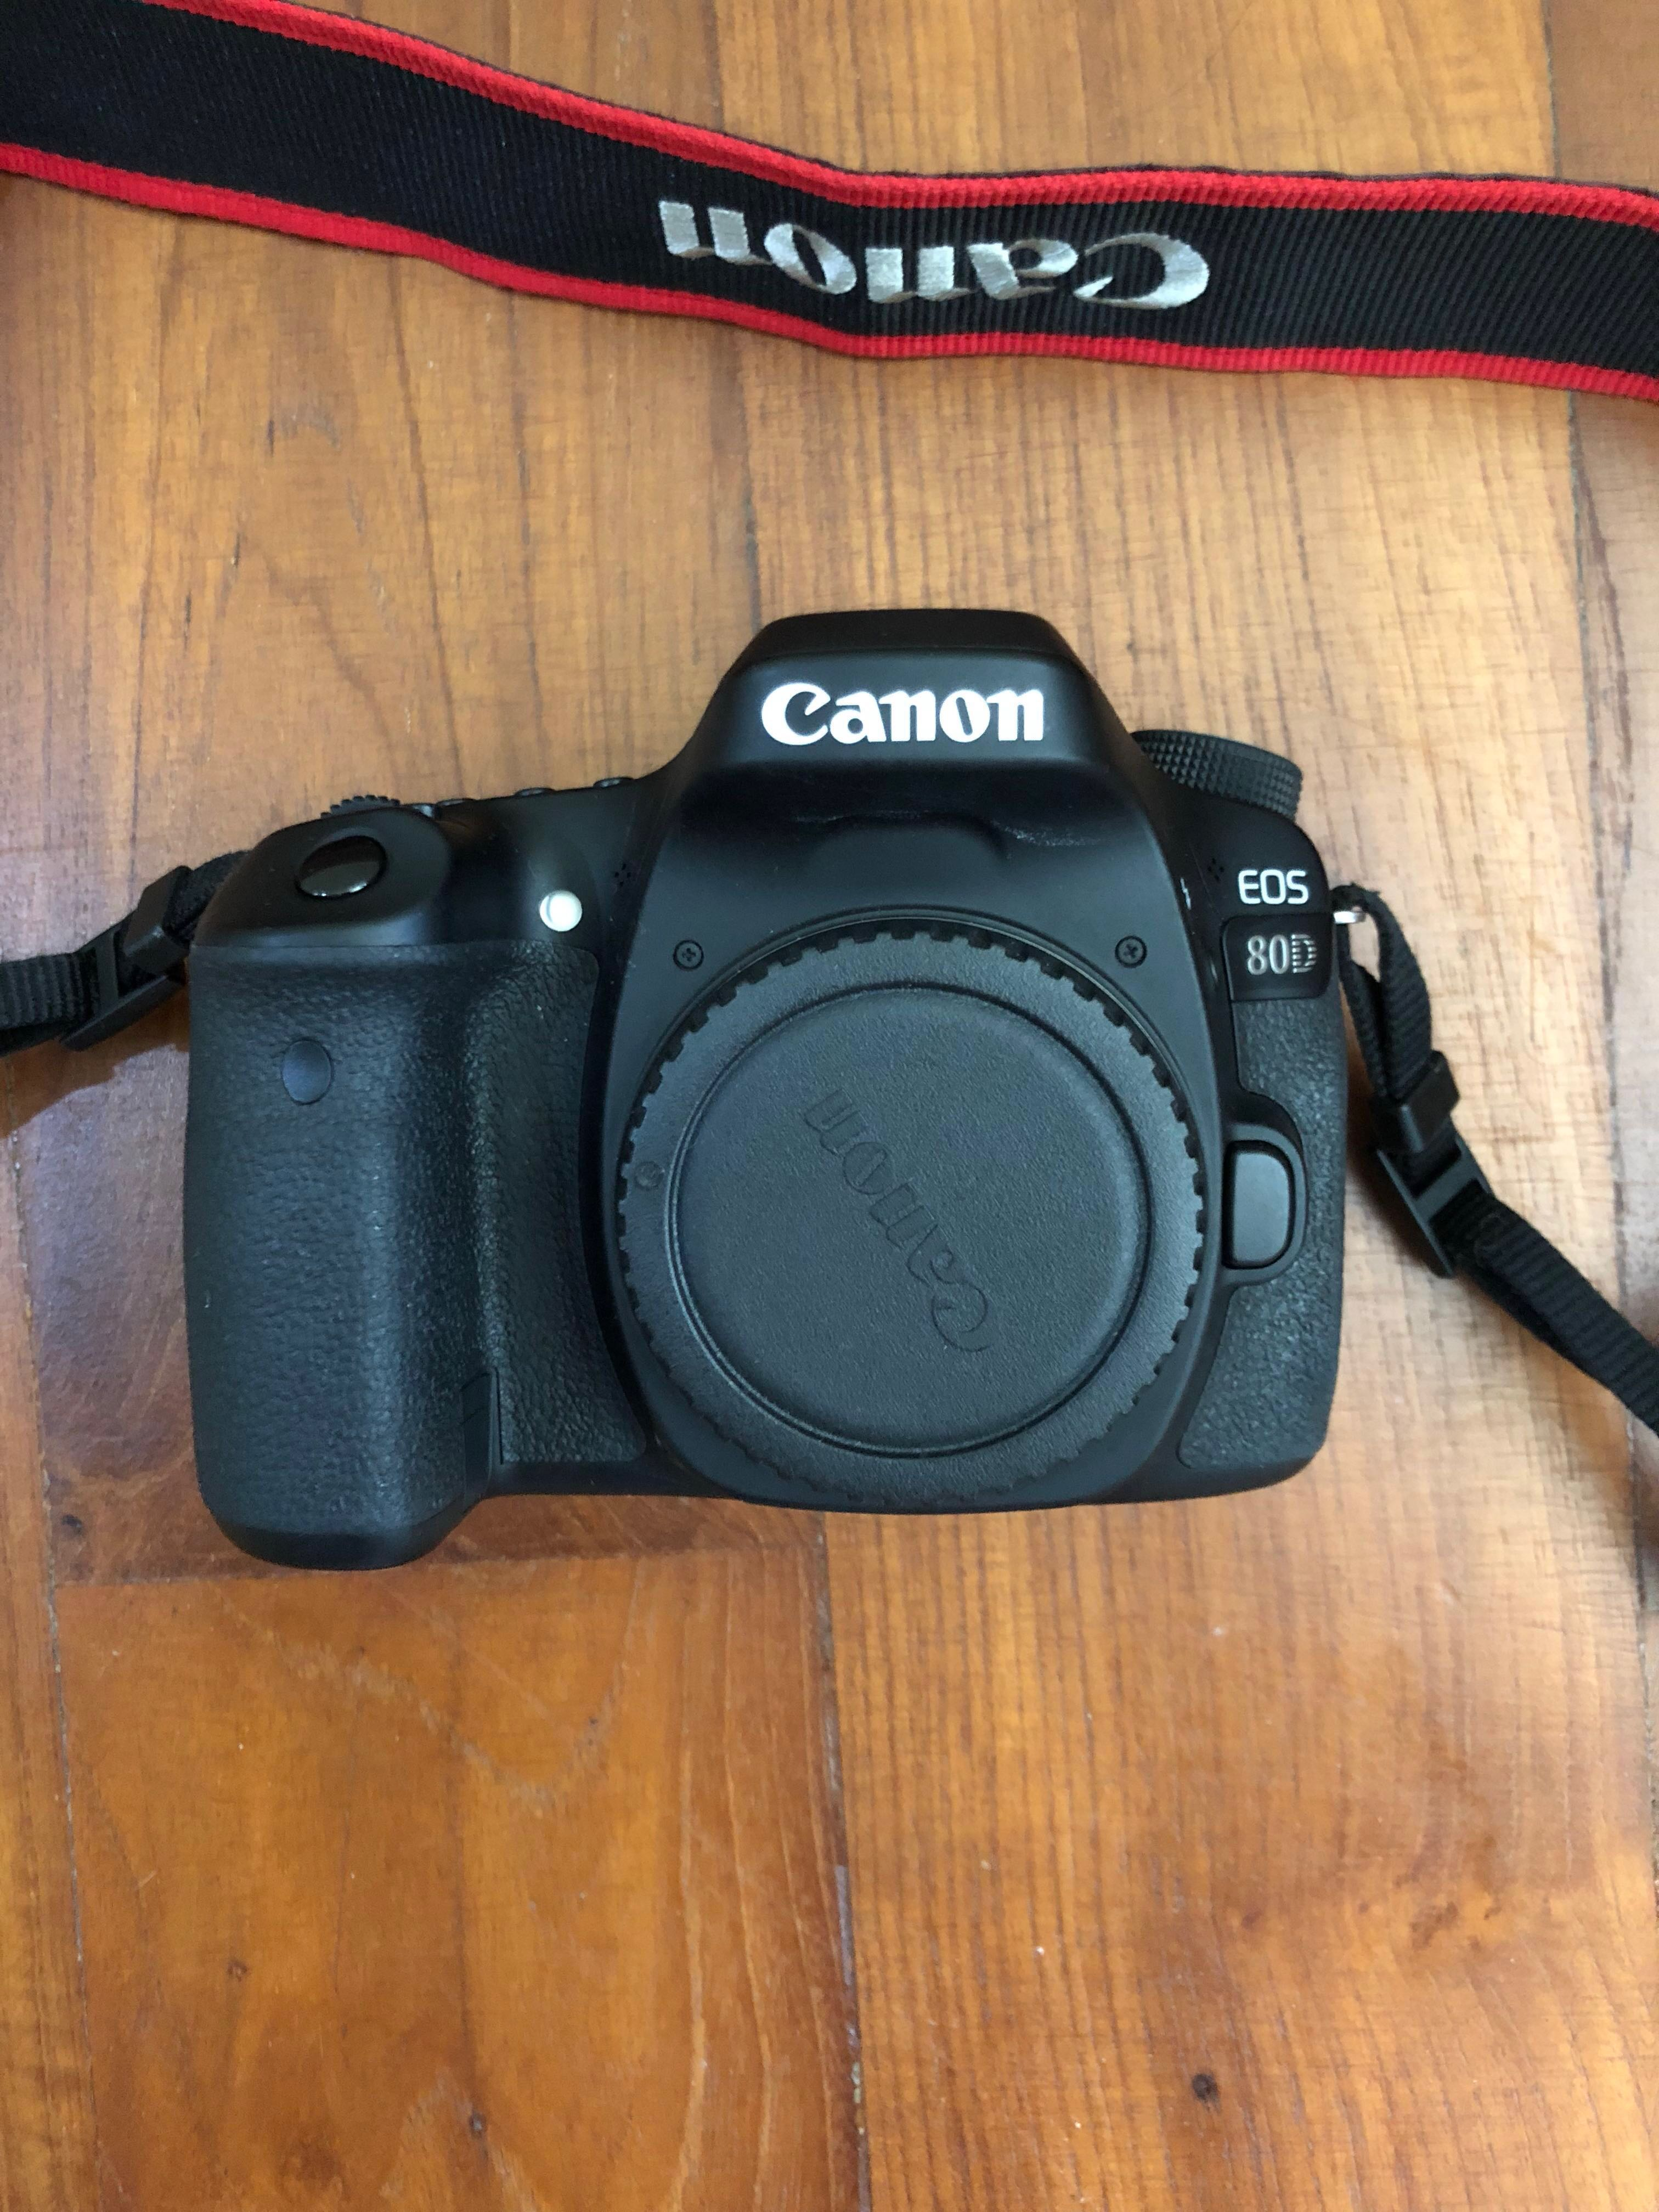 Canon 80D with 18-55mm kit lens